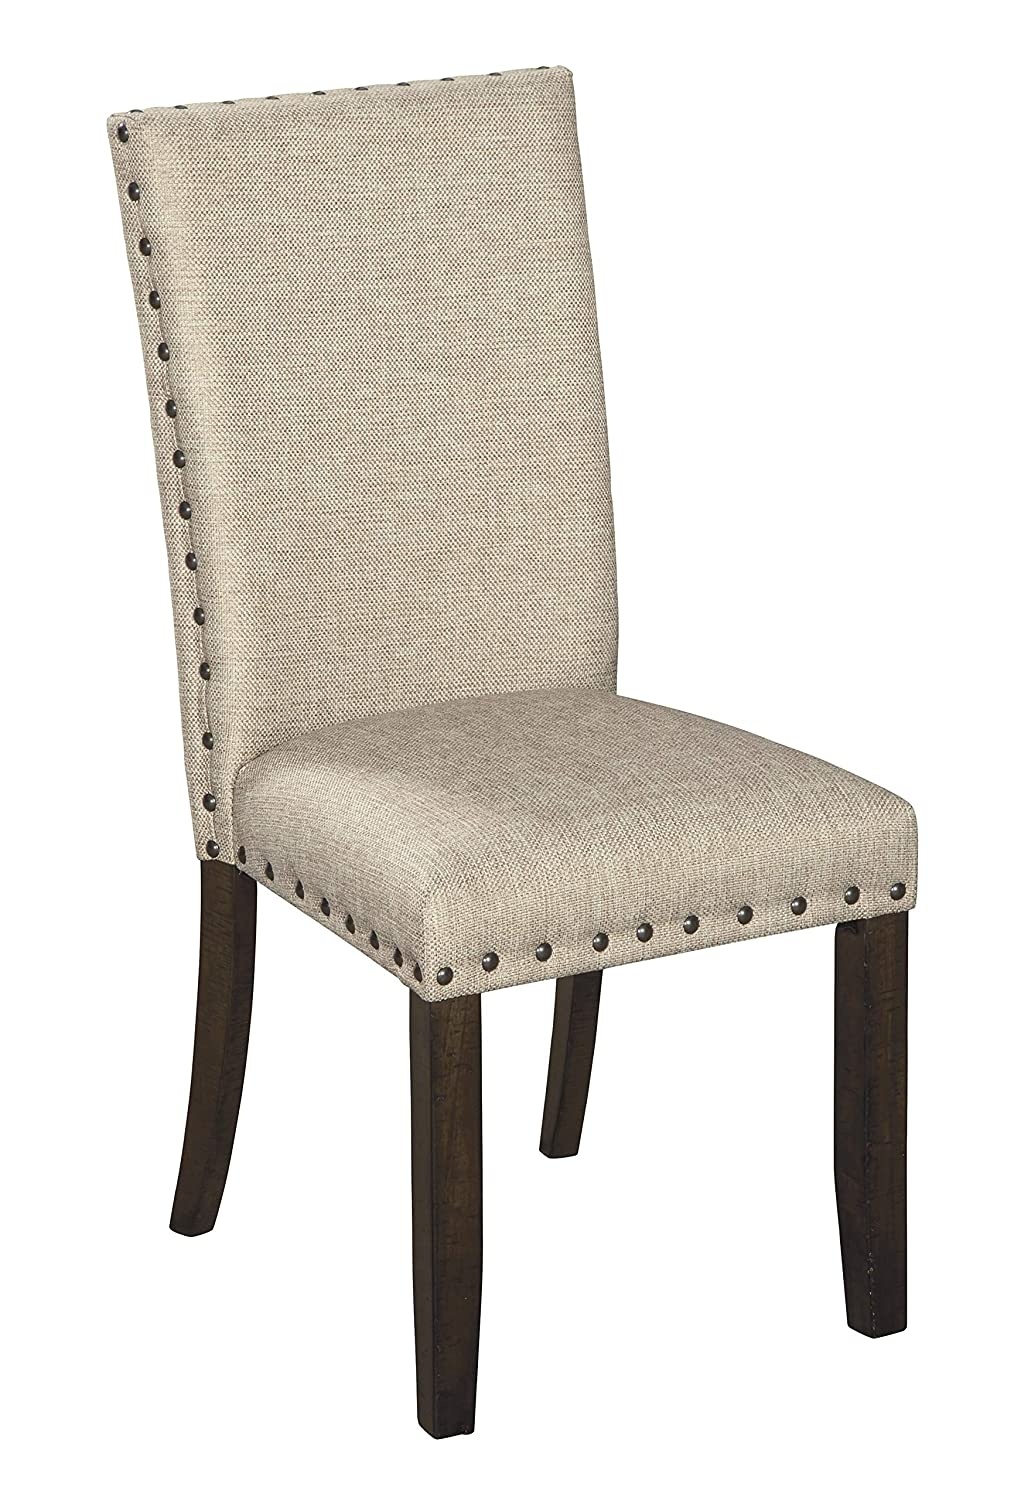 Signature Design by Ashley D617-01 Aldwin Dining Room Chair